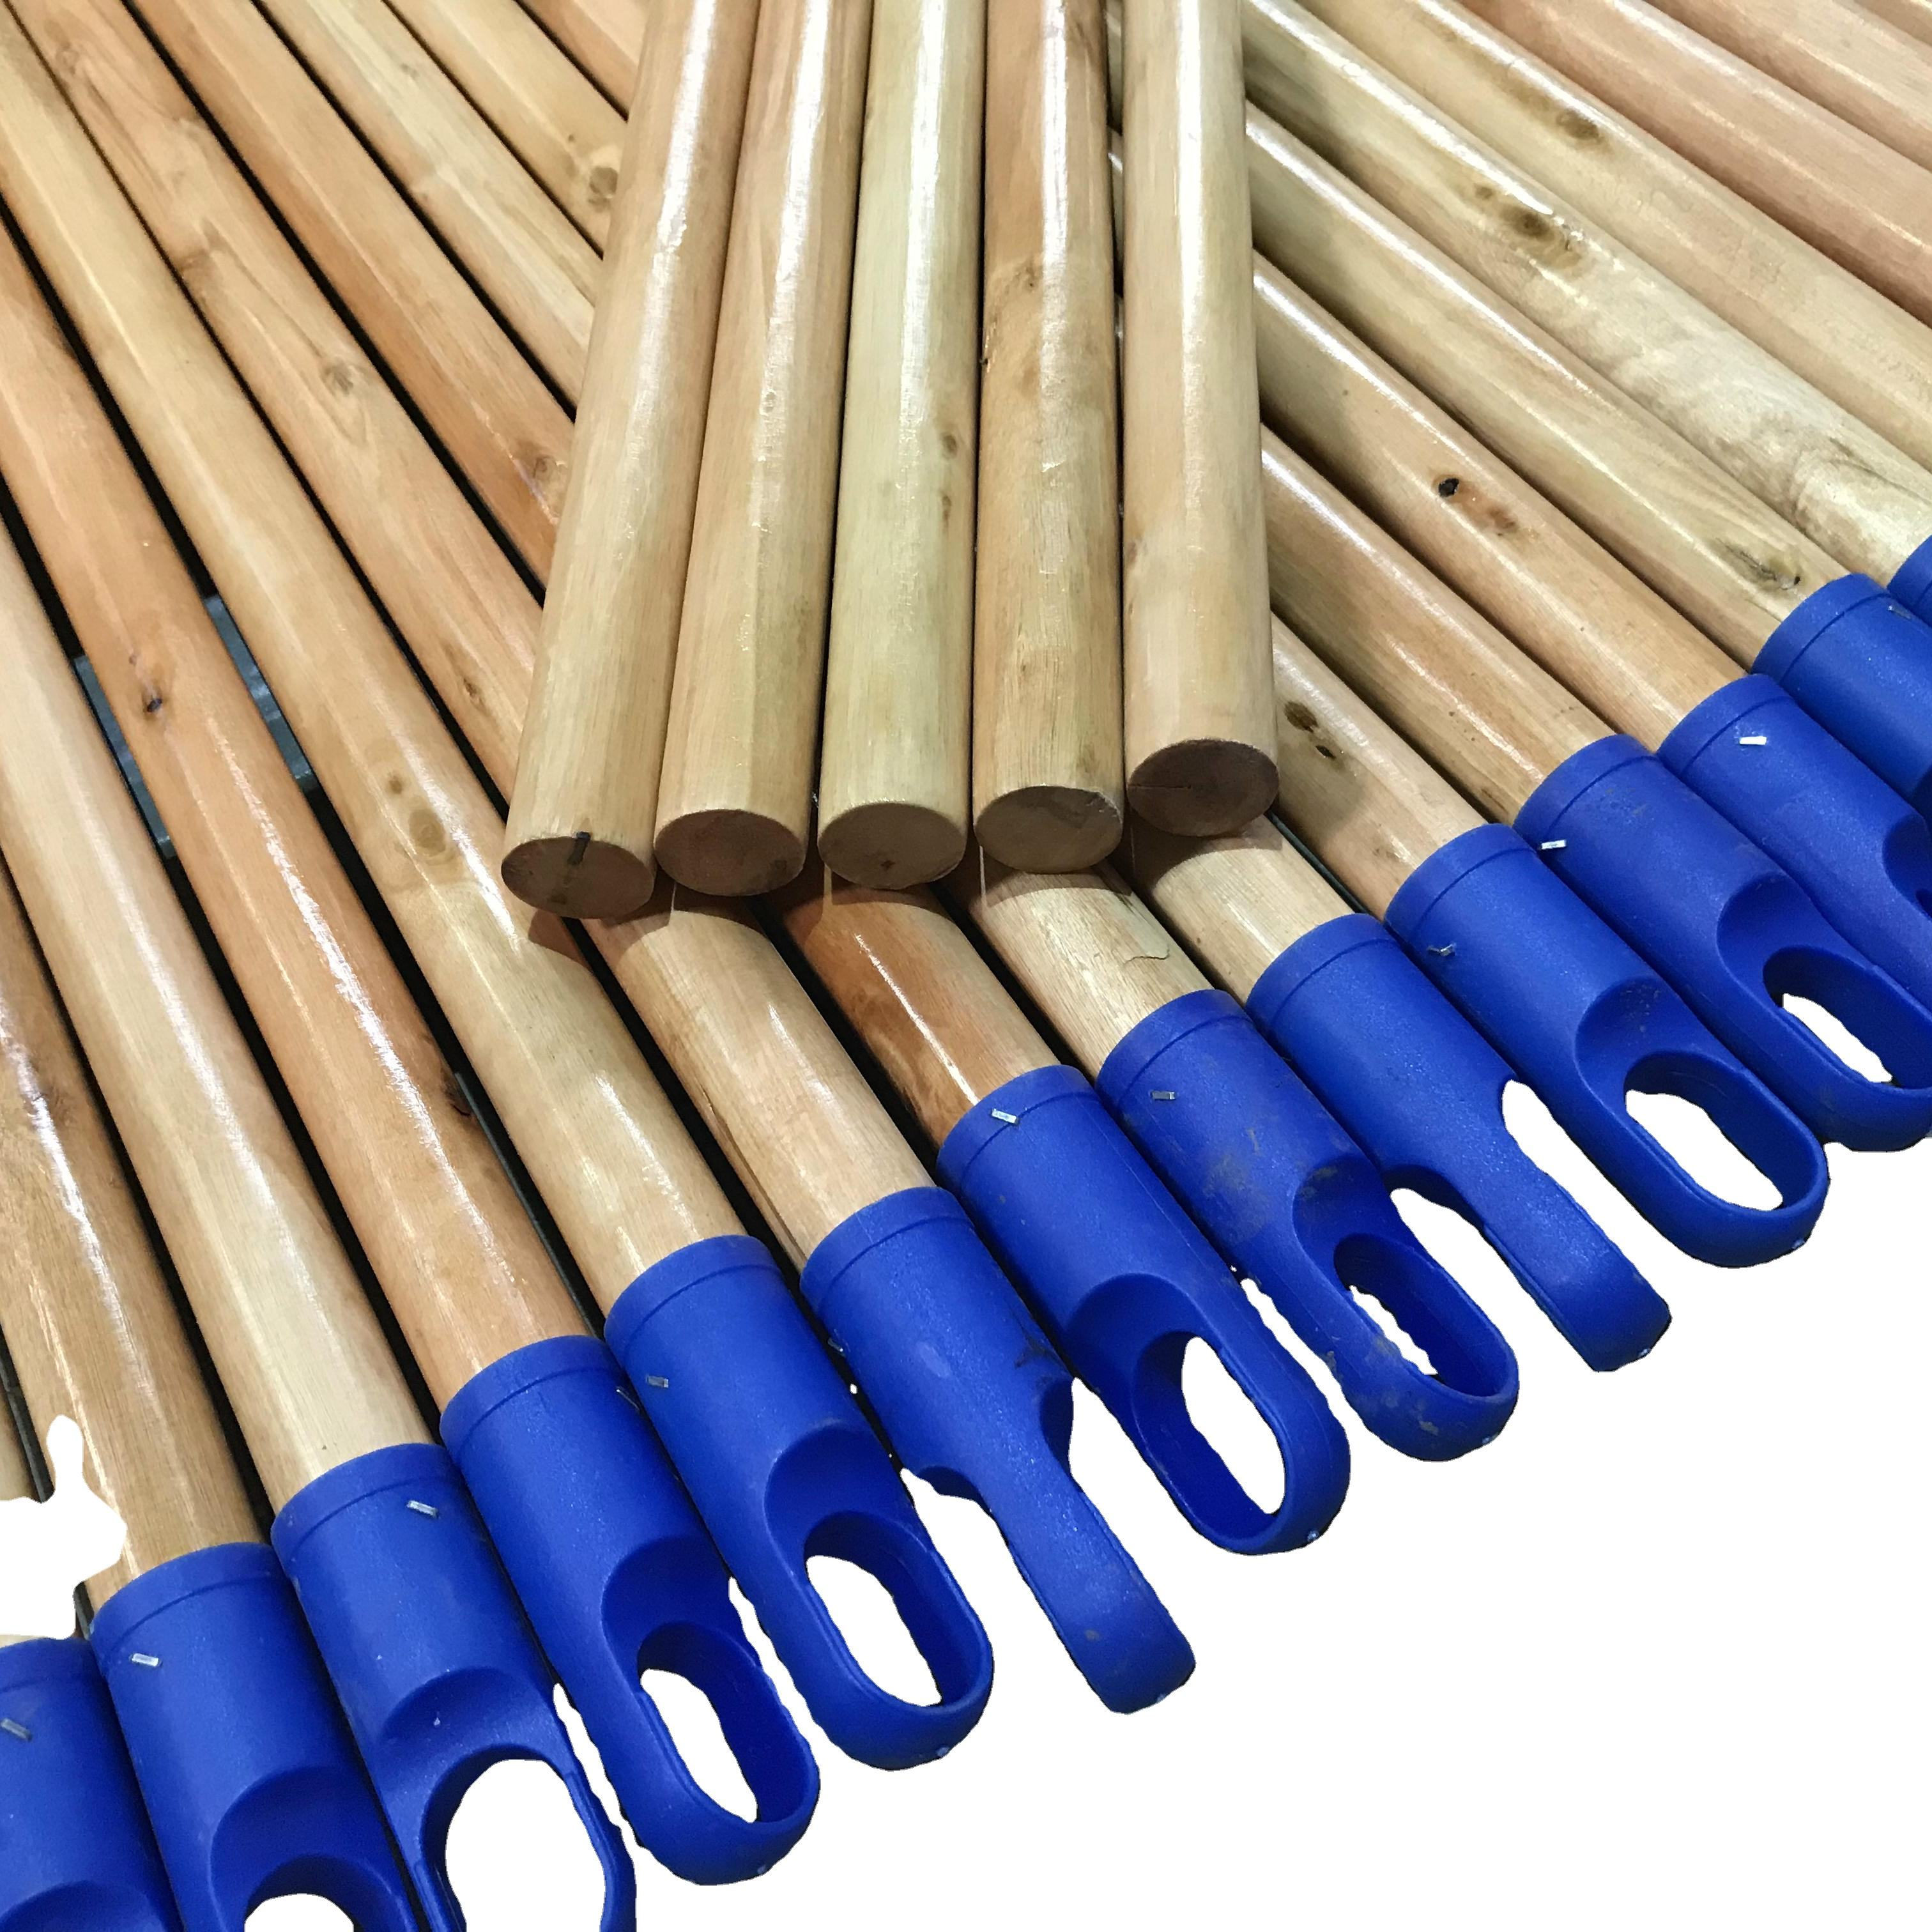 smooth 120cm/150cm length wooden broom handle stick poles with painting